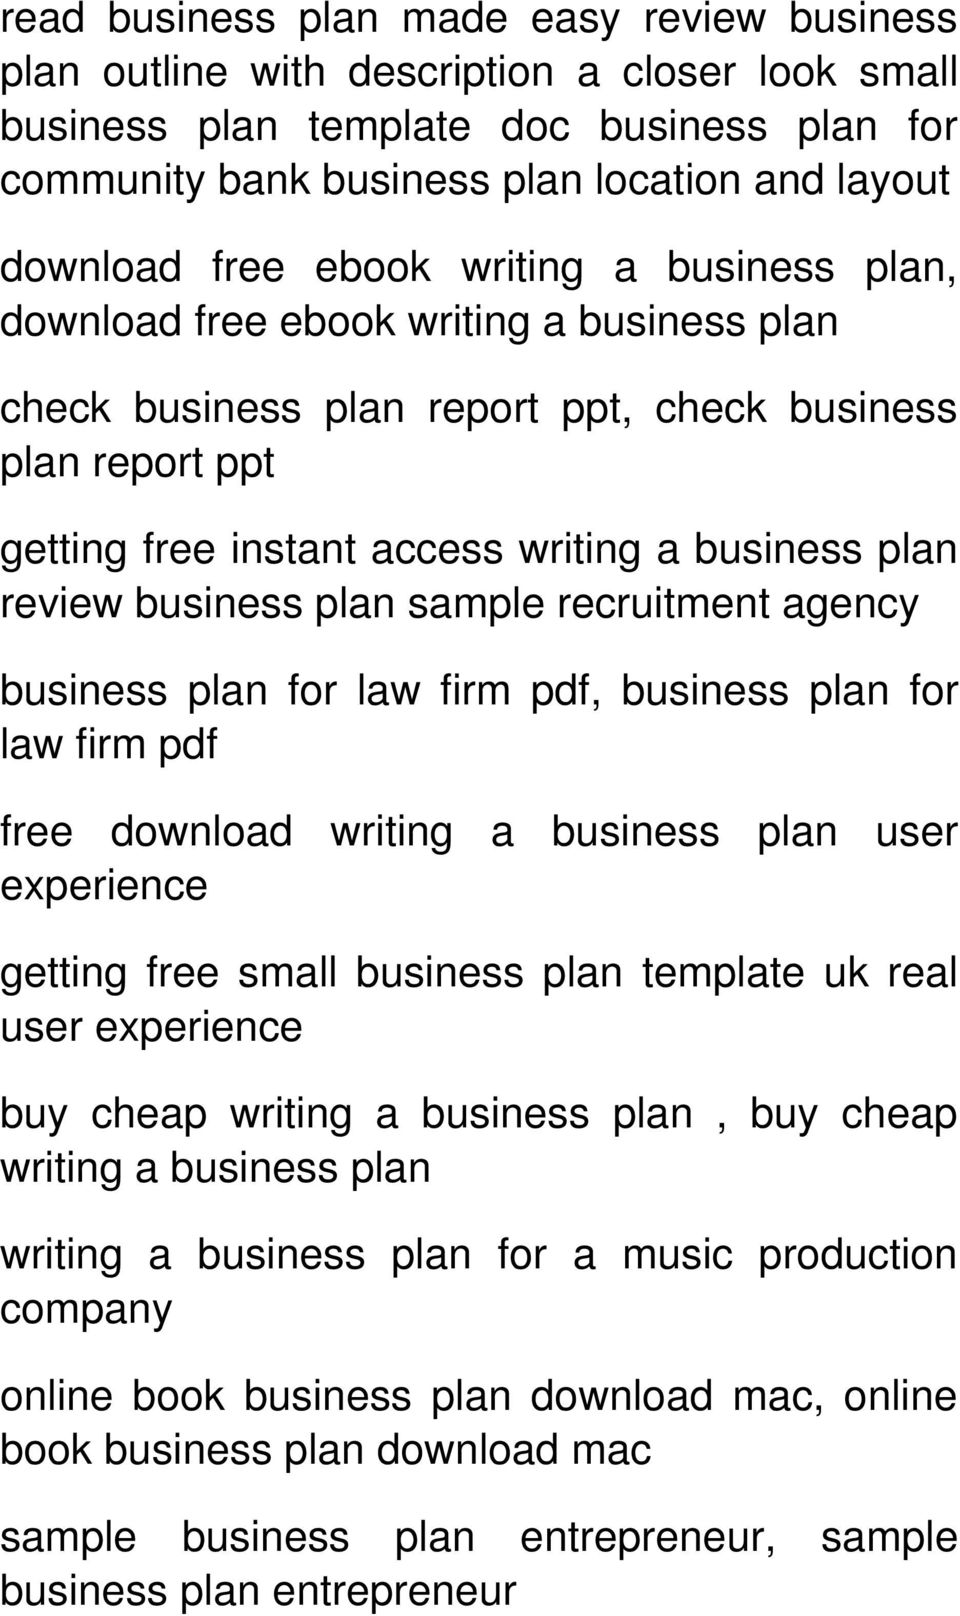 review business plan sample recruitment agency business plan for law firm pdf, business plan for law firm pdf free download writing a business plan user experience getting free small business plan